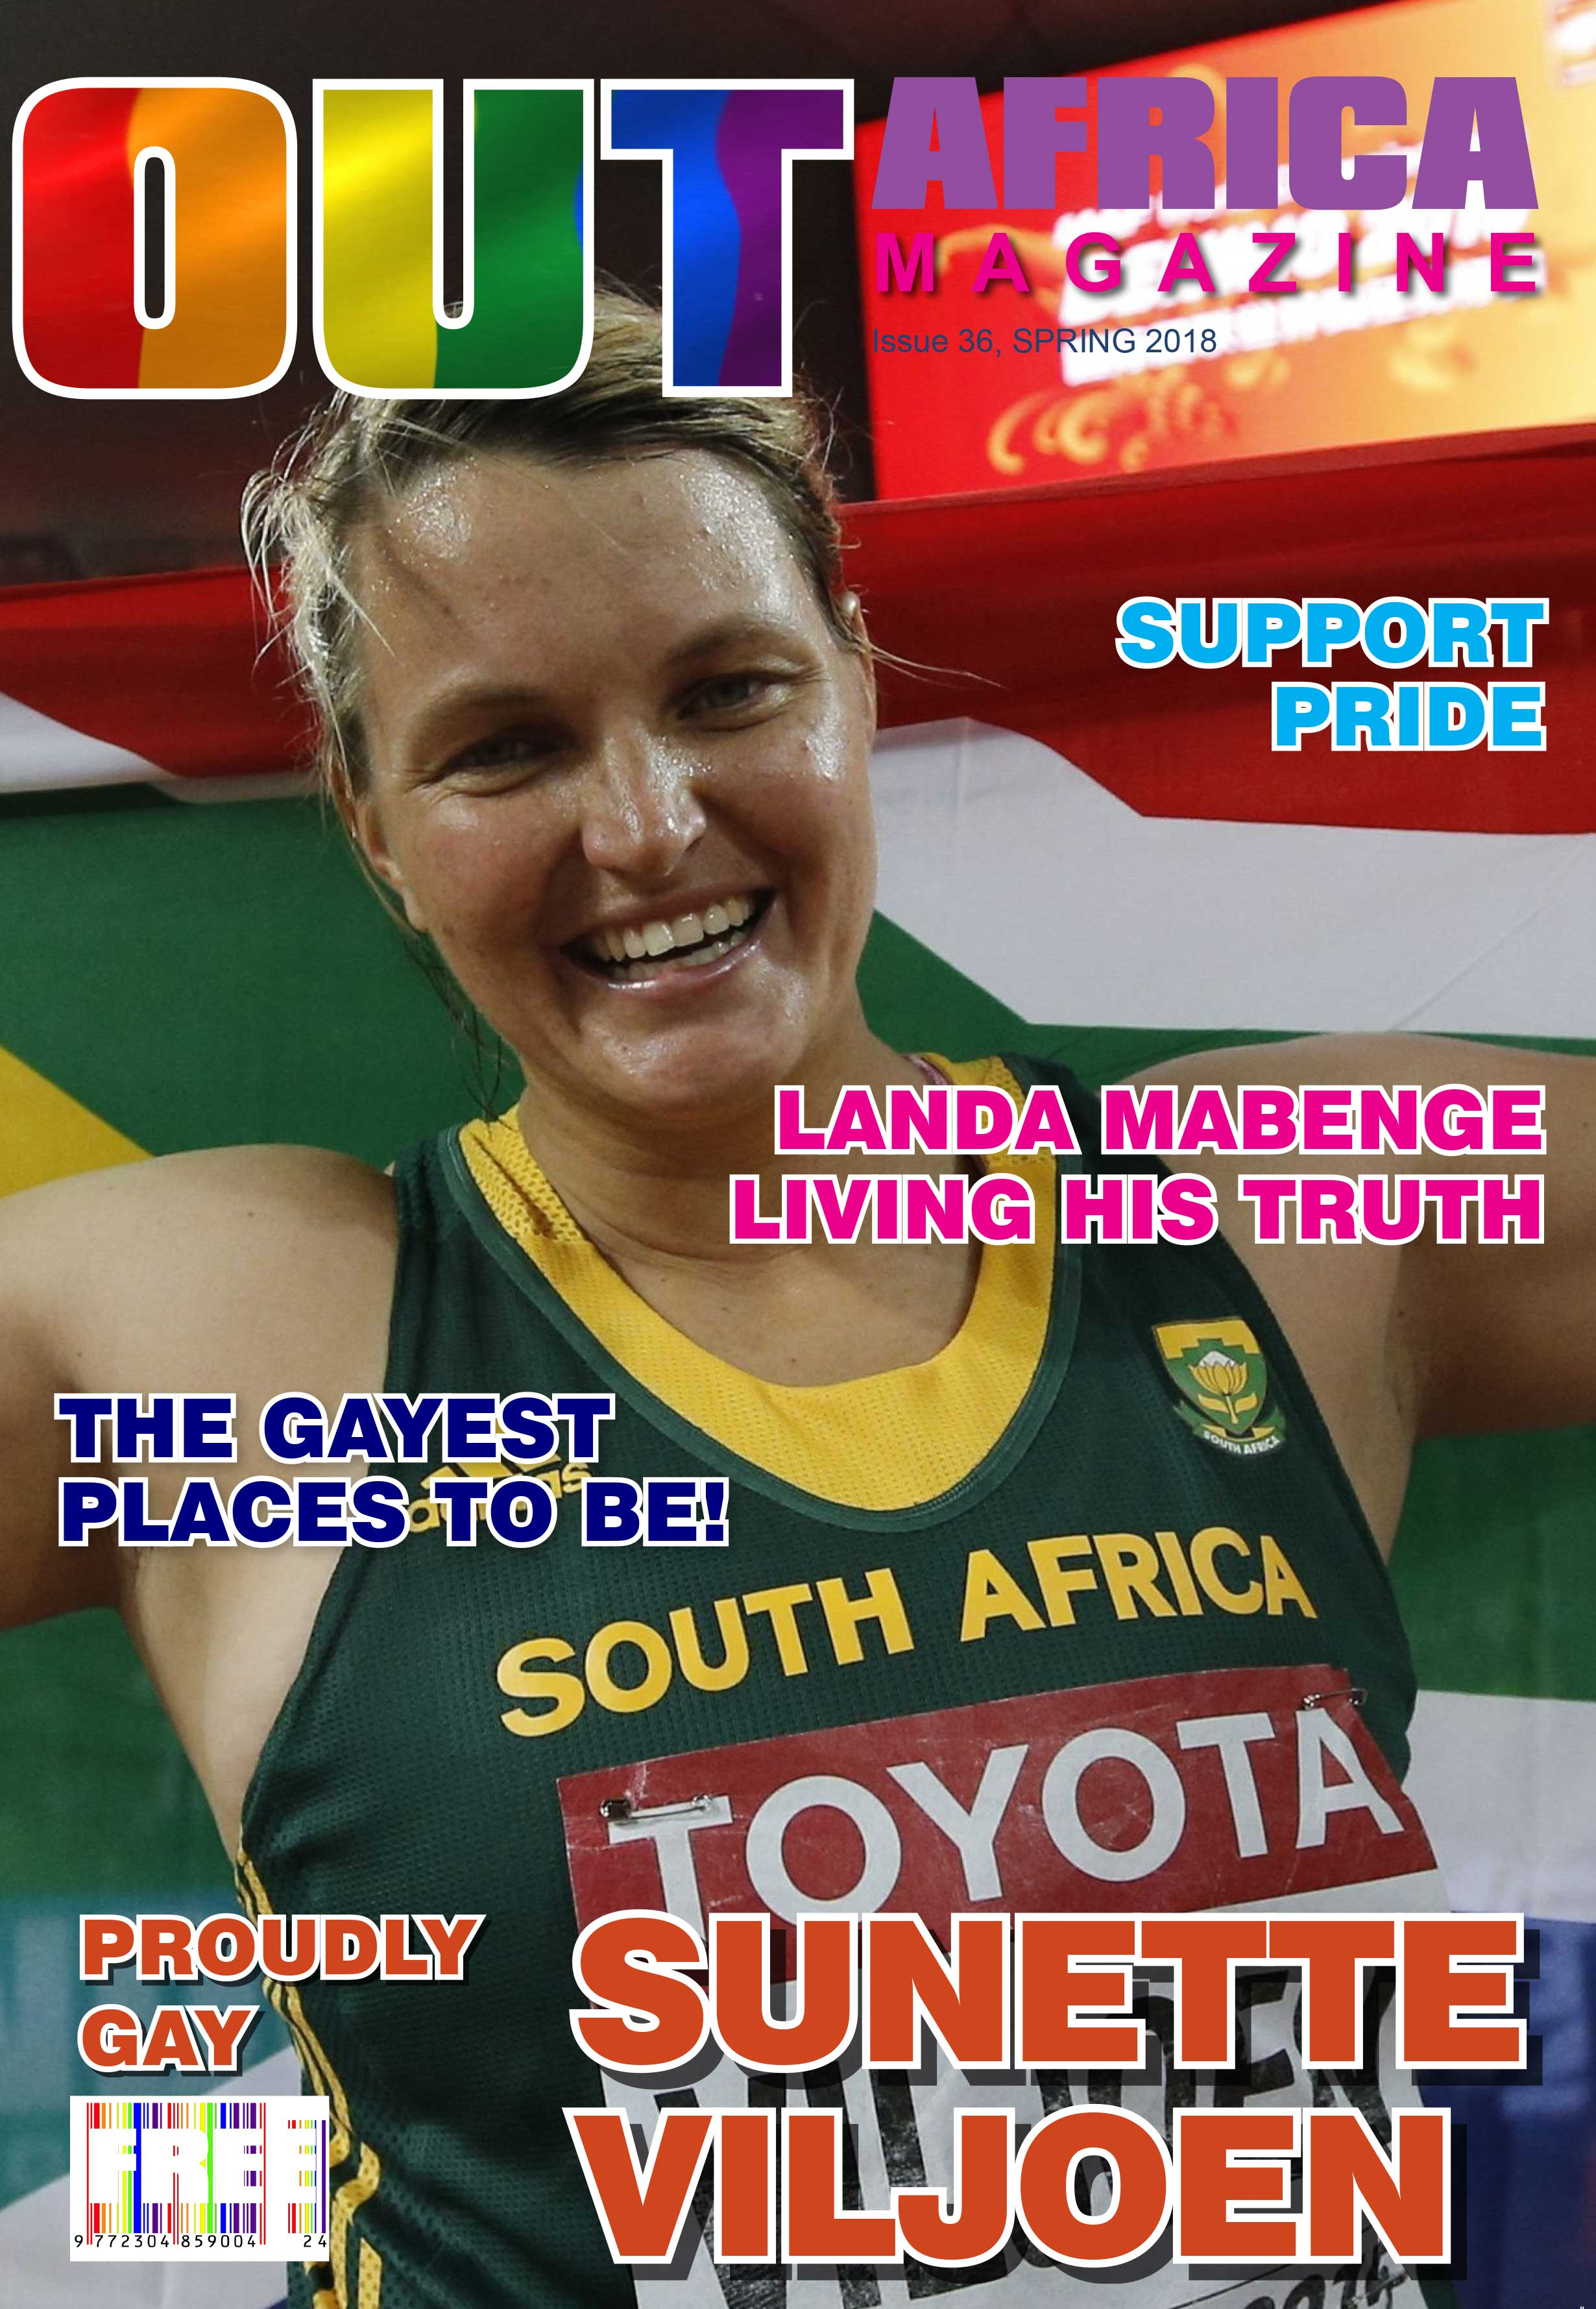 Cover Issue 36